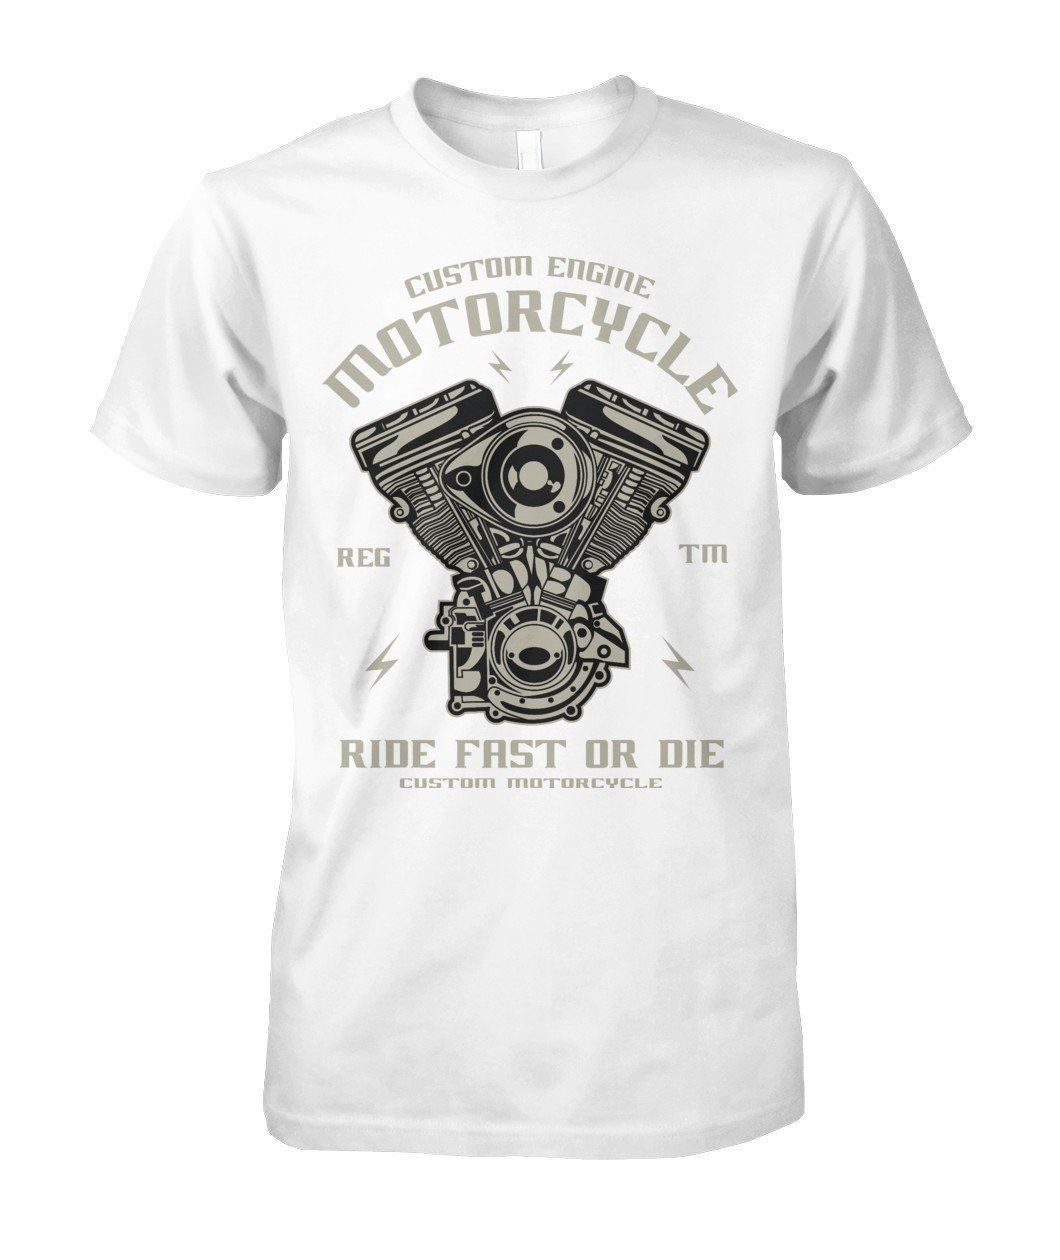 Biker T-shirt with Engine Print / Short Sleeve vintage tees / Rock t shirts - HARD'N'HEAVY